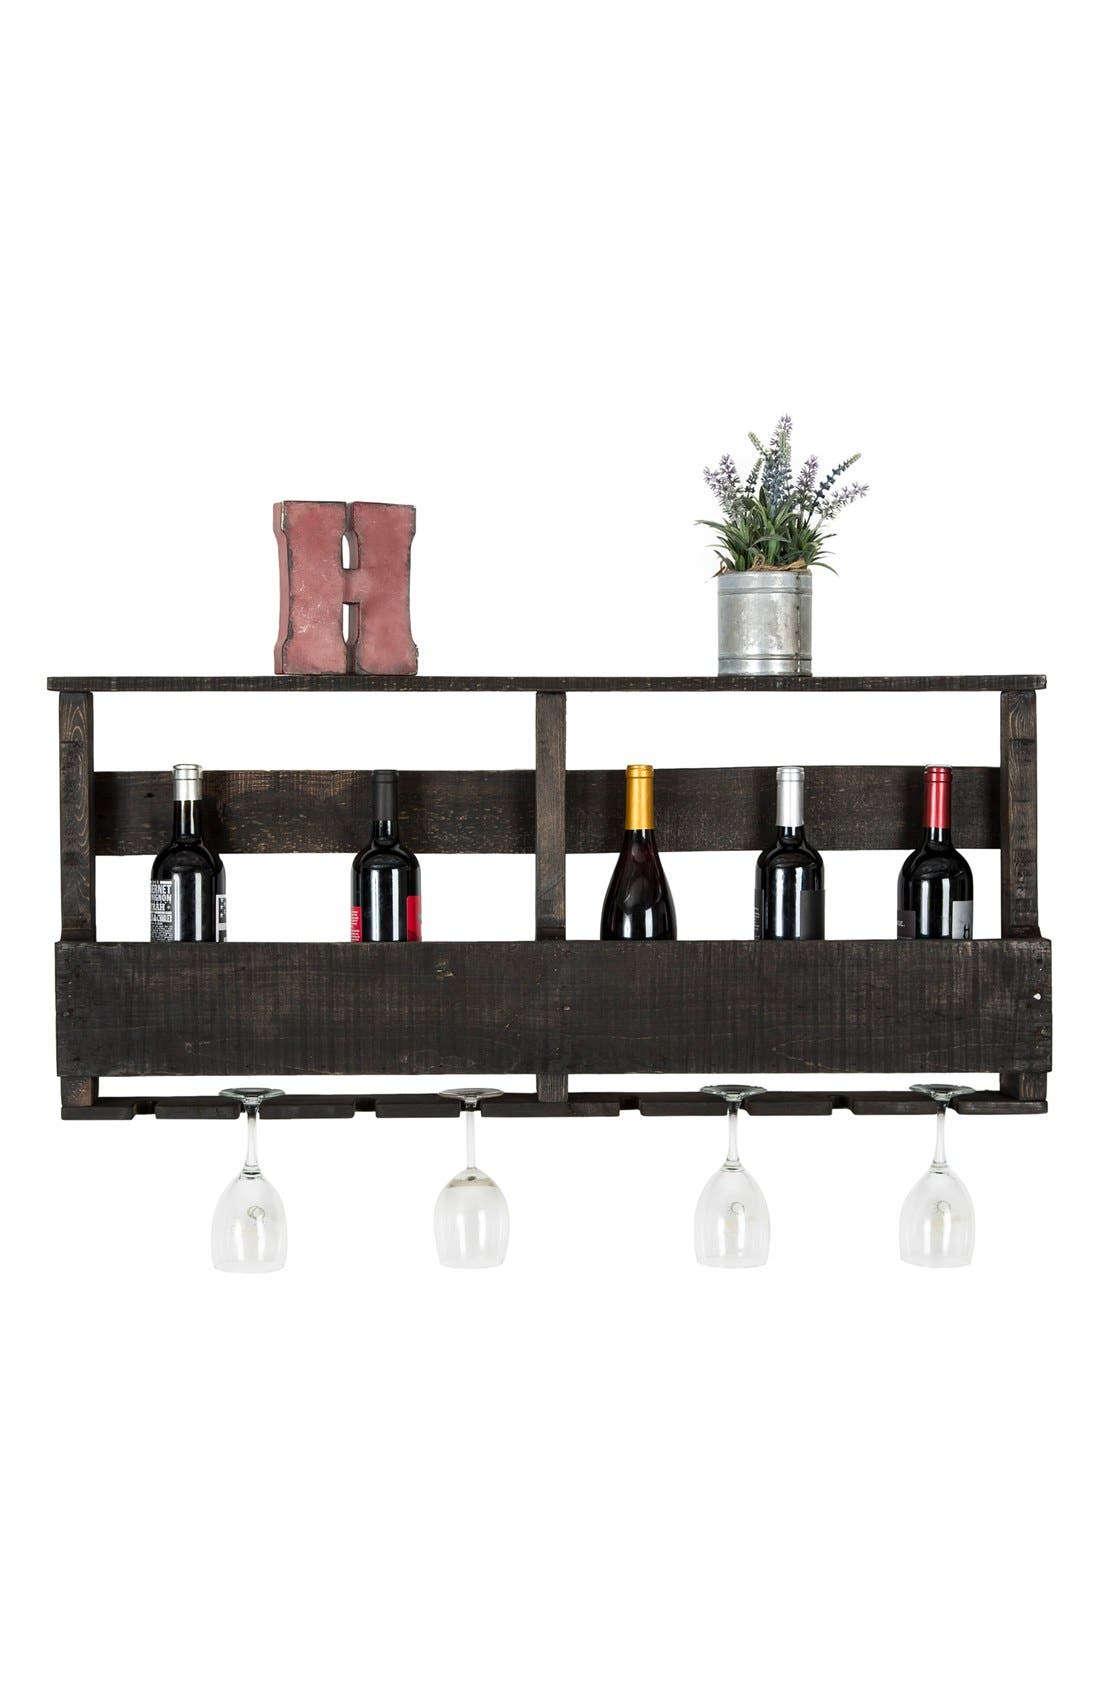 (DEL)HUTSON DESIGNS,                             (del) Hutson Designs 'Top Shelf' Repurposed Wood Wine Rack,                             Alternate thumbnail 2, color,                             001